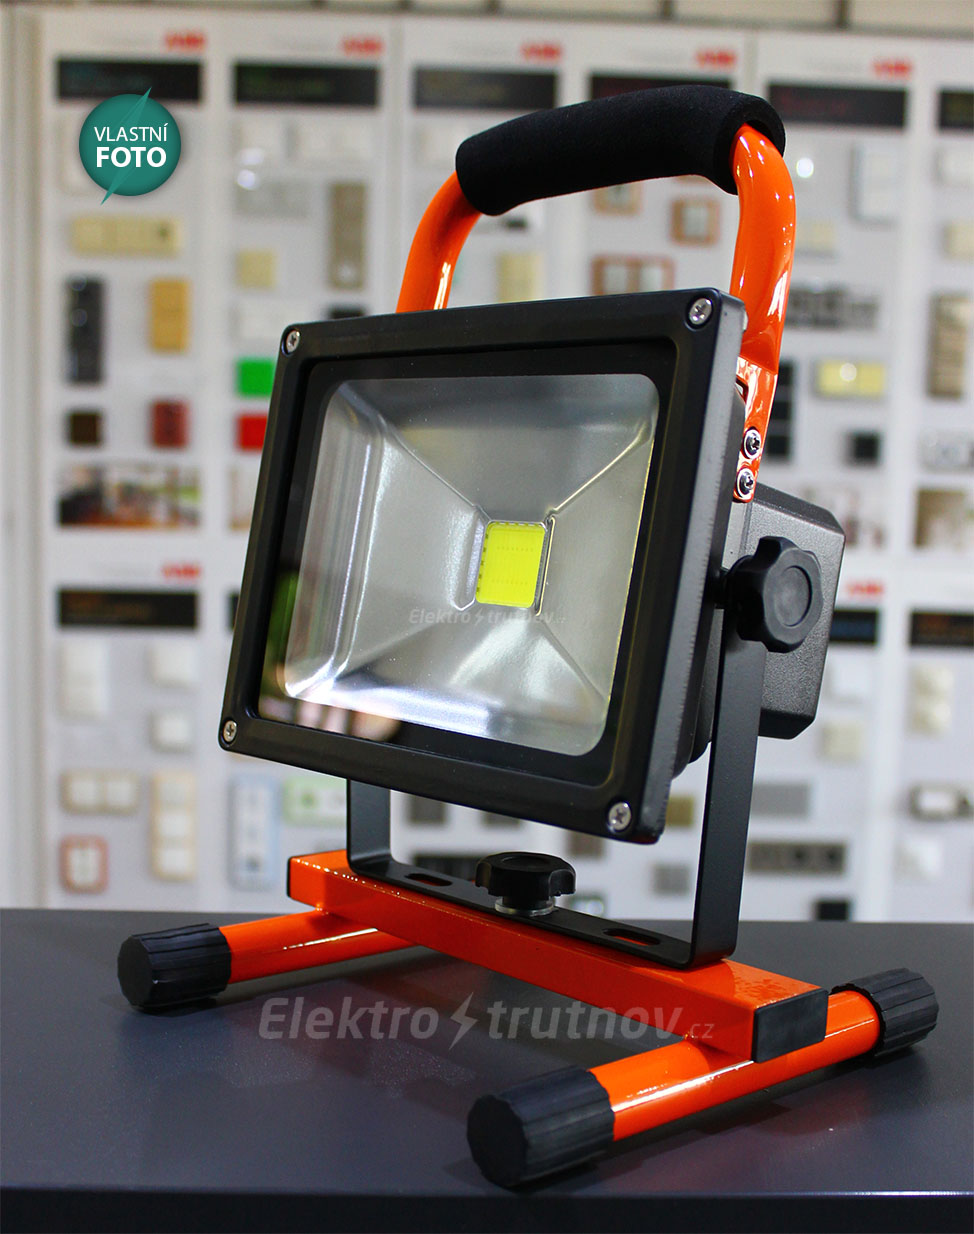 SOLIGHT-WM-20W-D-LED-elektro-trutnov.cz